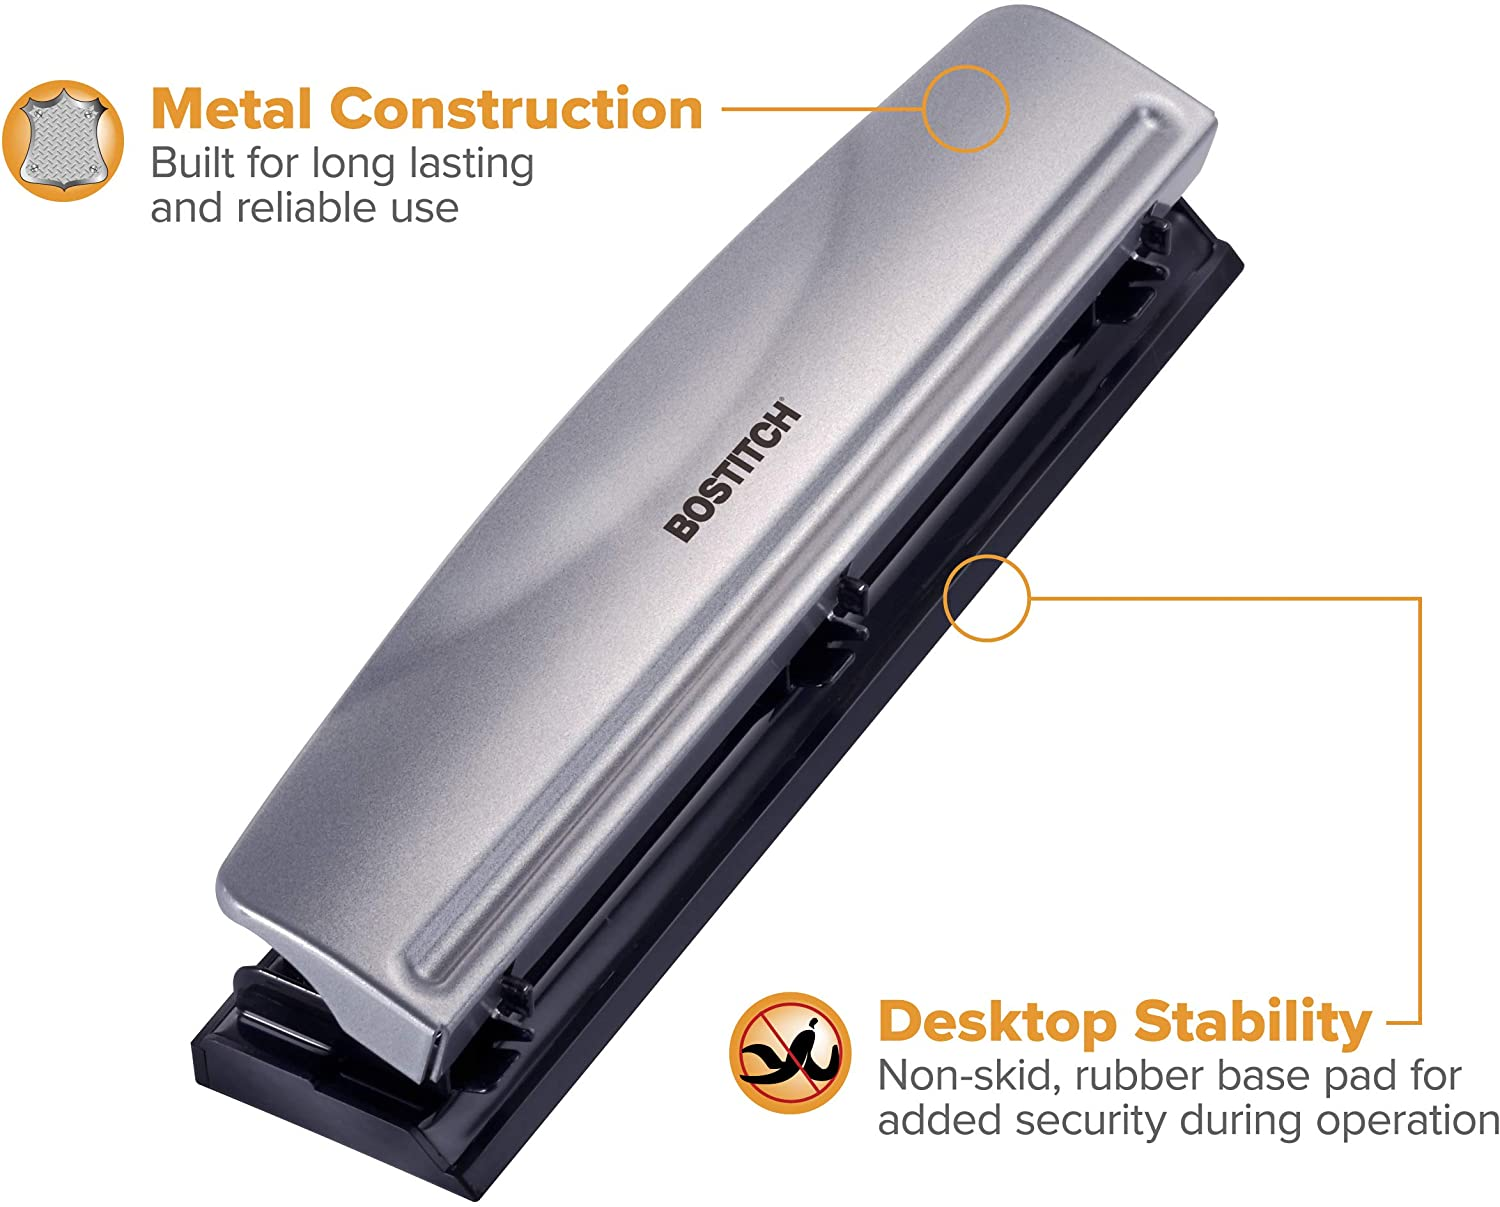 12 Sheet Capacity Combo Pack Metal Hole Punch and 3 in 1 Stapler with Integrated Remover /& Staple Storage